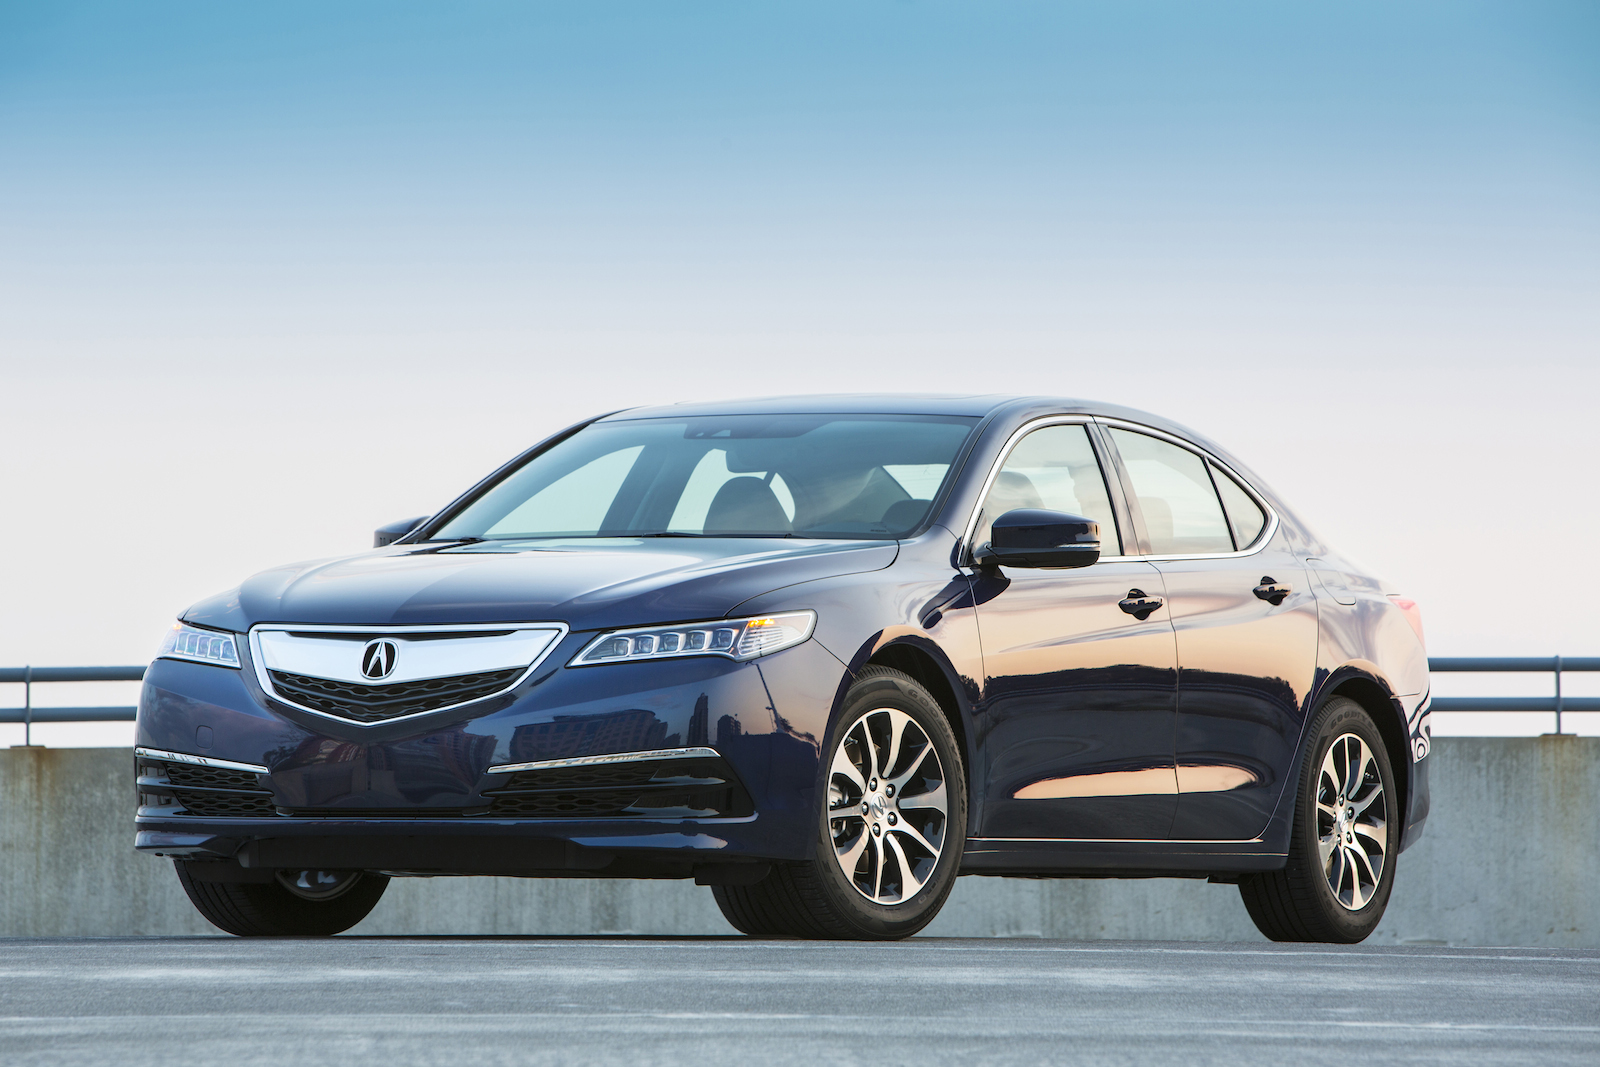 2015 acura tlx first drive review. Black Bedroom Furniture Sets. Home Design Ideas